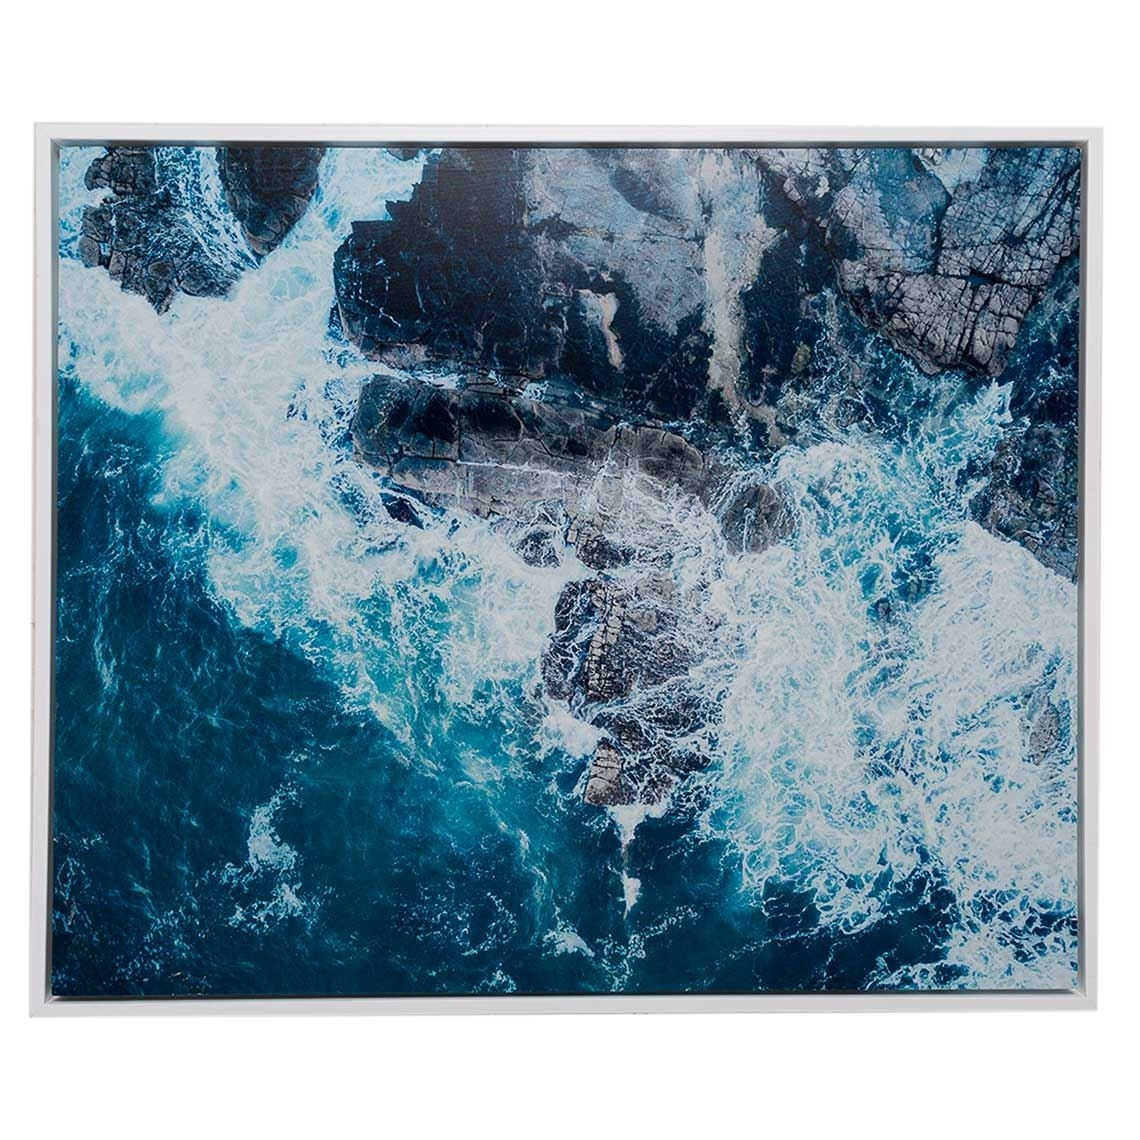 Neeks & Gaston Framed Canvas 120X100Cm Mooloolaba Waves Within Newest Mandurah Canvas Wall Art (View 7 of 15)